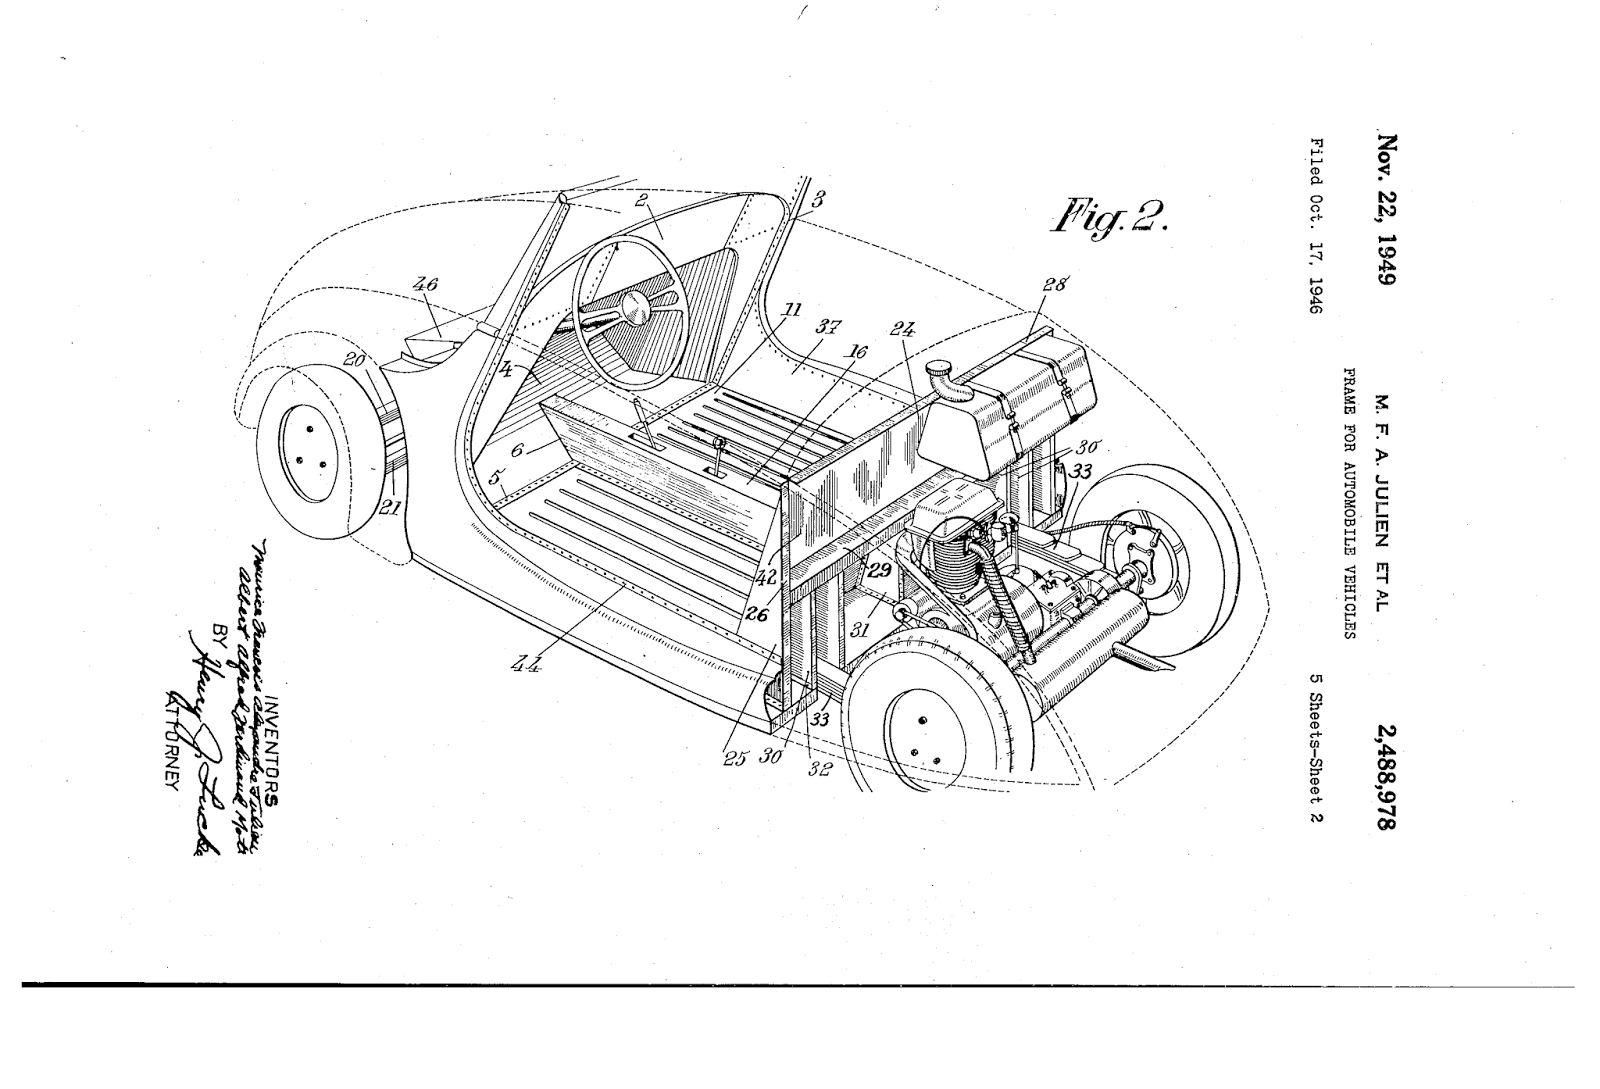 Heinkel Scooter Project 1935 Maier Leichtbau 1980 Ferrari Gtb Engine Diagram A Copy Of The Car Patent Showing Design Details Including Original Layout